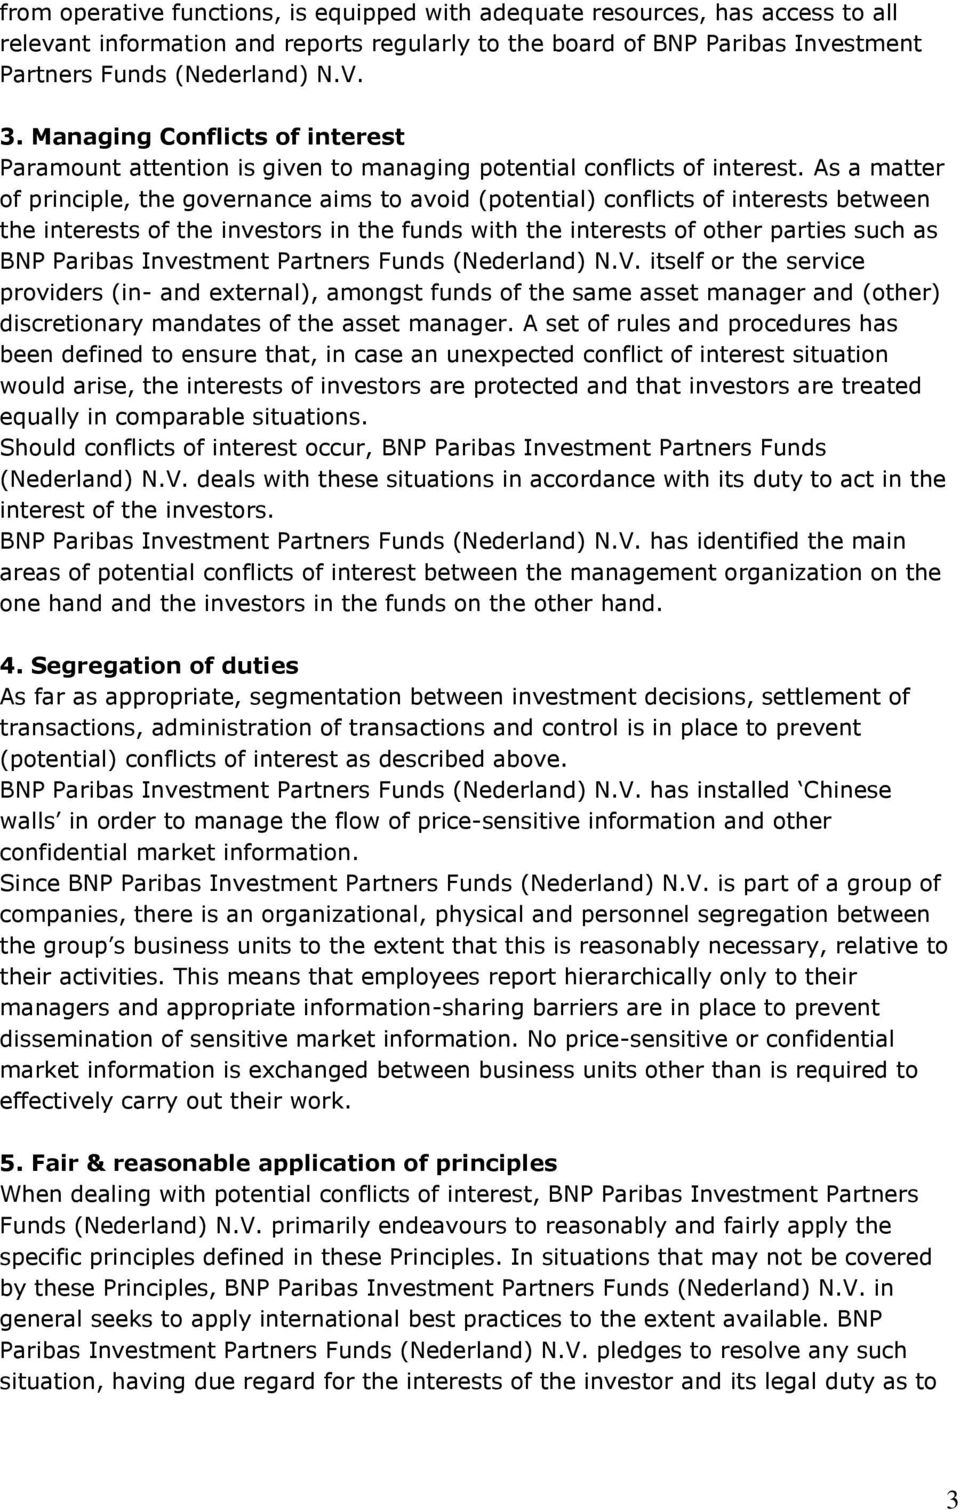 As a matter of principle, the governance aims to avoid (potential) conflicts of interests between the interests of the investors in the funds with the interests of other parties such as BNP Paribas